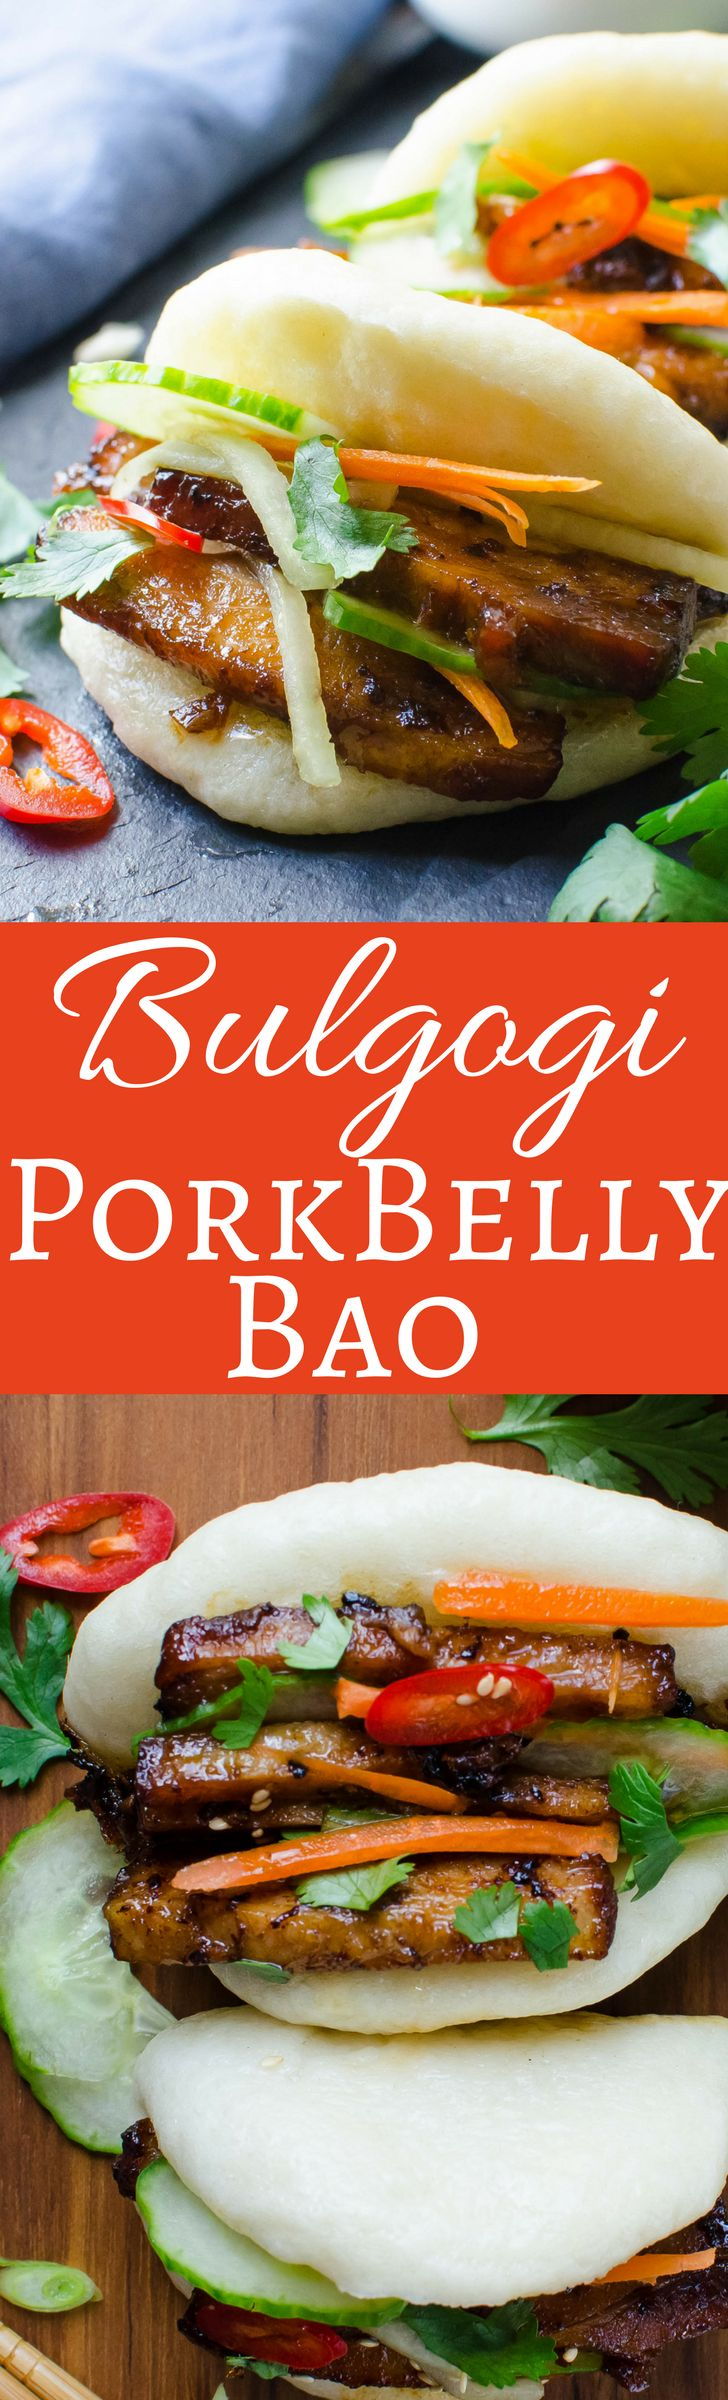 This easy recipe for Asian Steamed Pork Buns is a winner! Bulgogi Pork Belly Bao gets its flavor from a spicy, sweet savory marinade that will have you licking your fingers and going back for more!